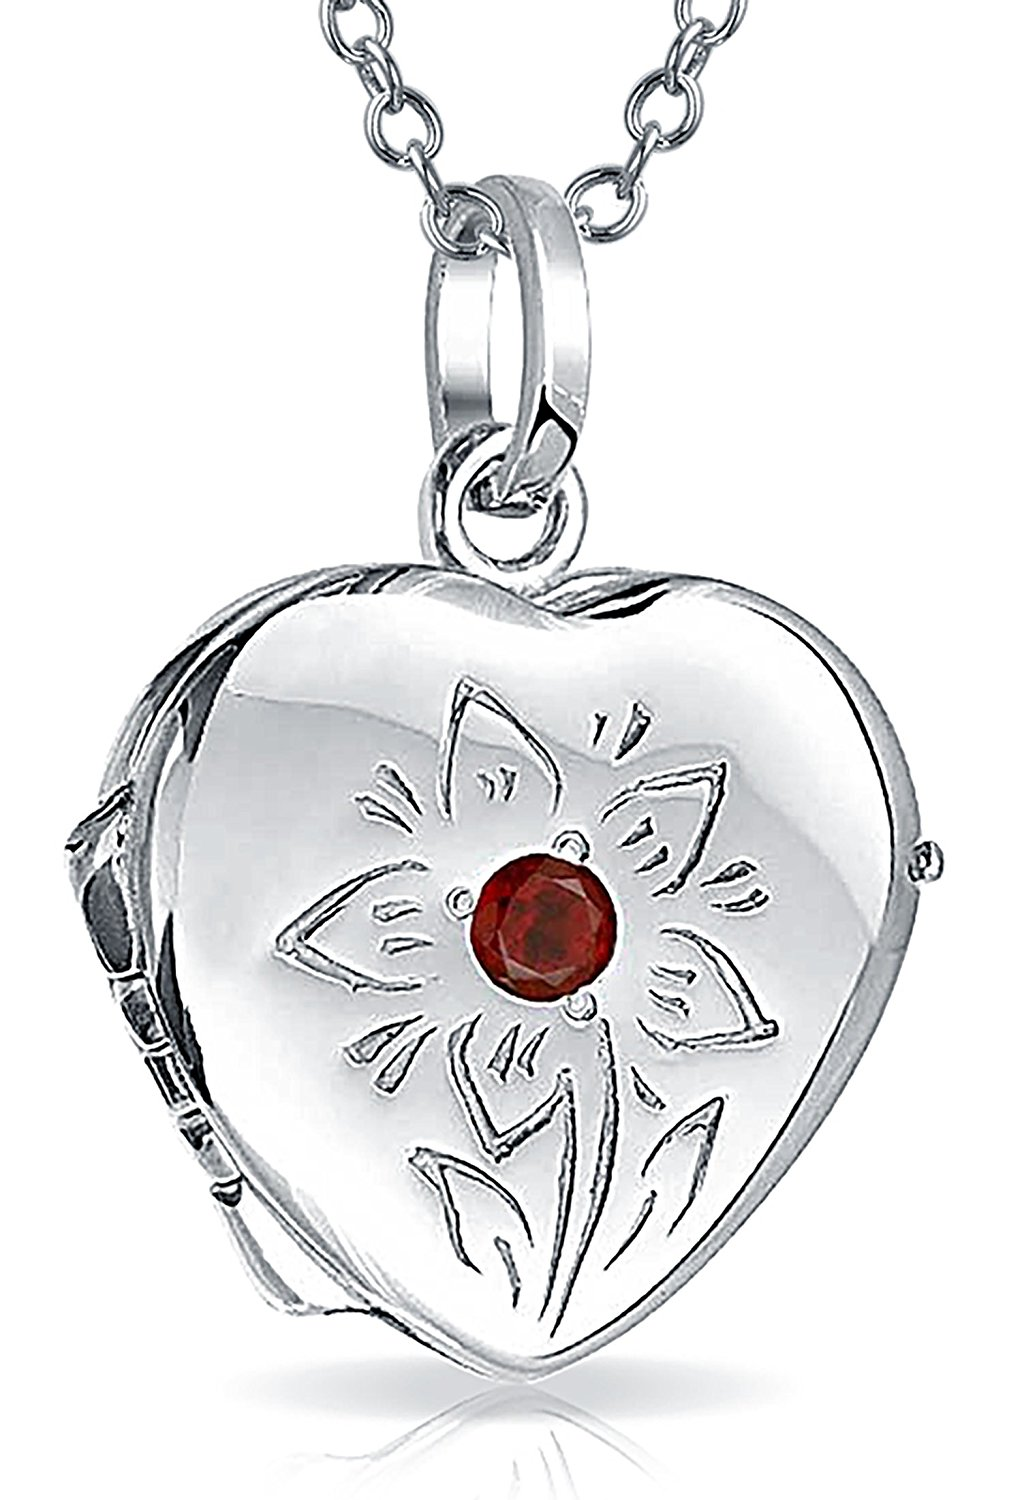 67cbfb5cdbfc28 Get Quotations · Engravable CZ Simulated Garnet Flower Heart Locket Pendant  Sterling Silver Necklace 18 Inches